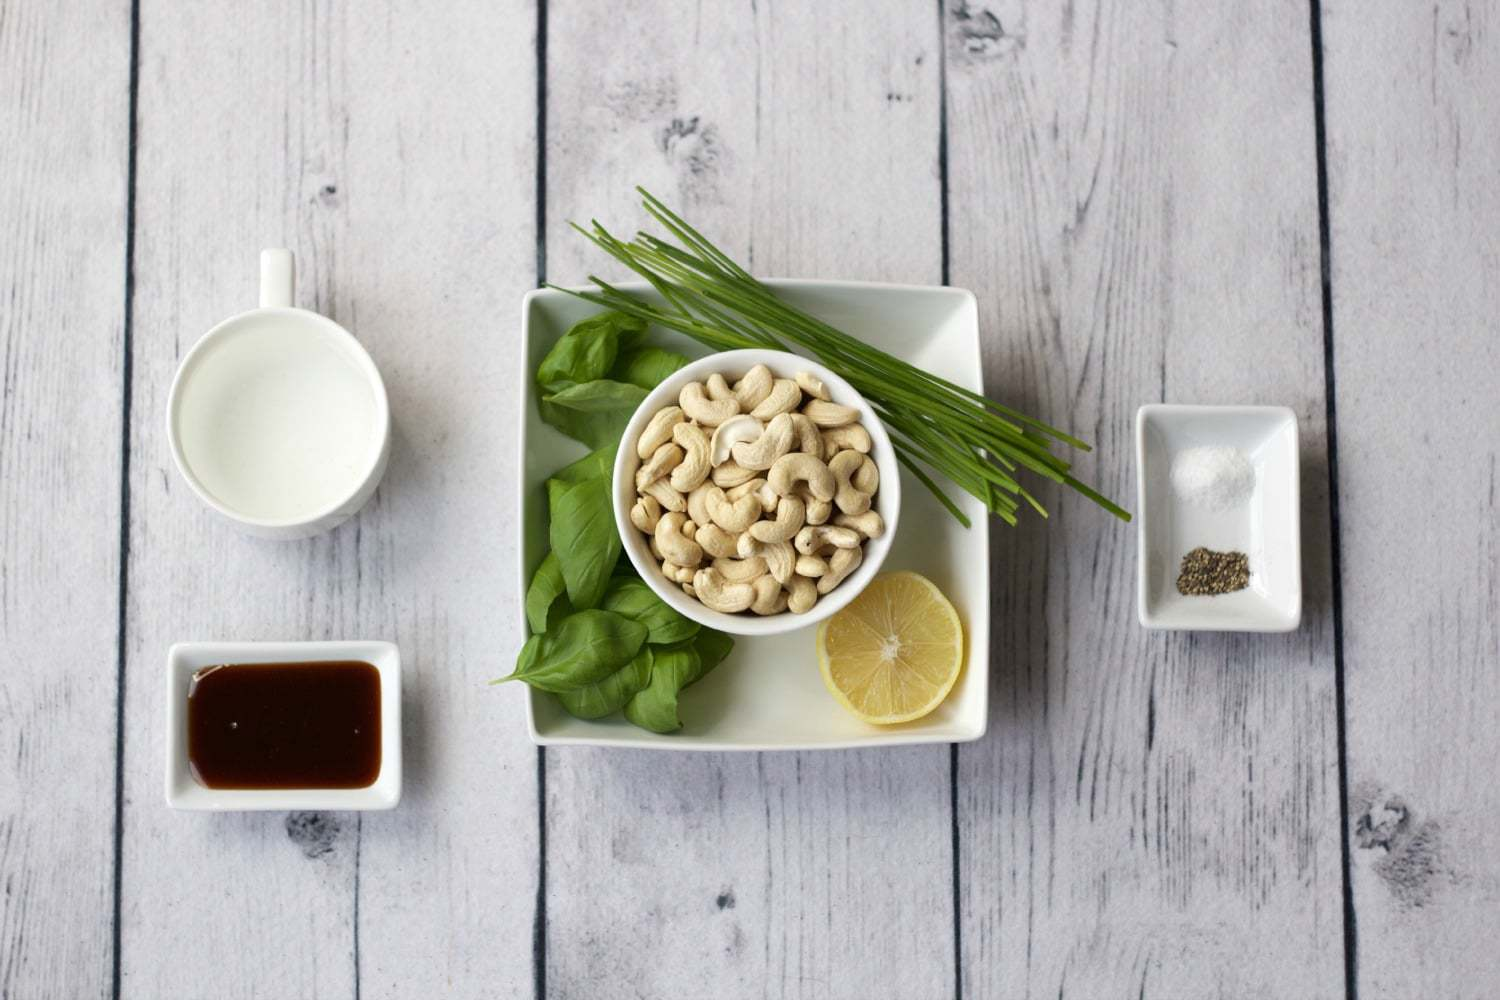 A bowl of cashews in a white bowl surrounded by basil leaves, chives and half a lemon on a white plate. A cup of water stands to the side, as does a small white plate with date syrup, and another small white plate with salt and other spice.